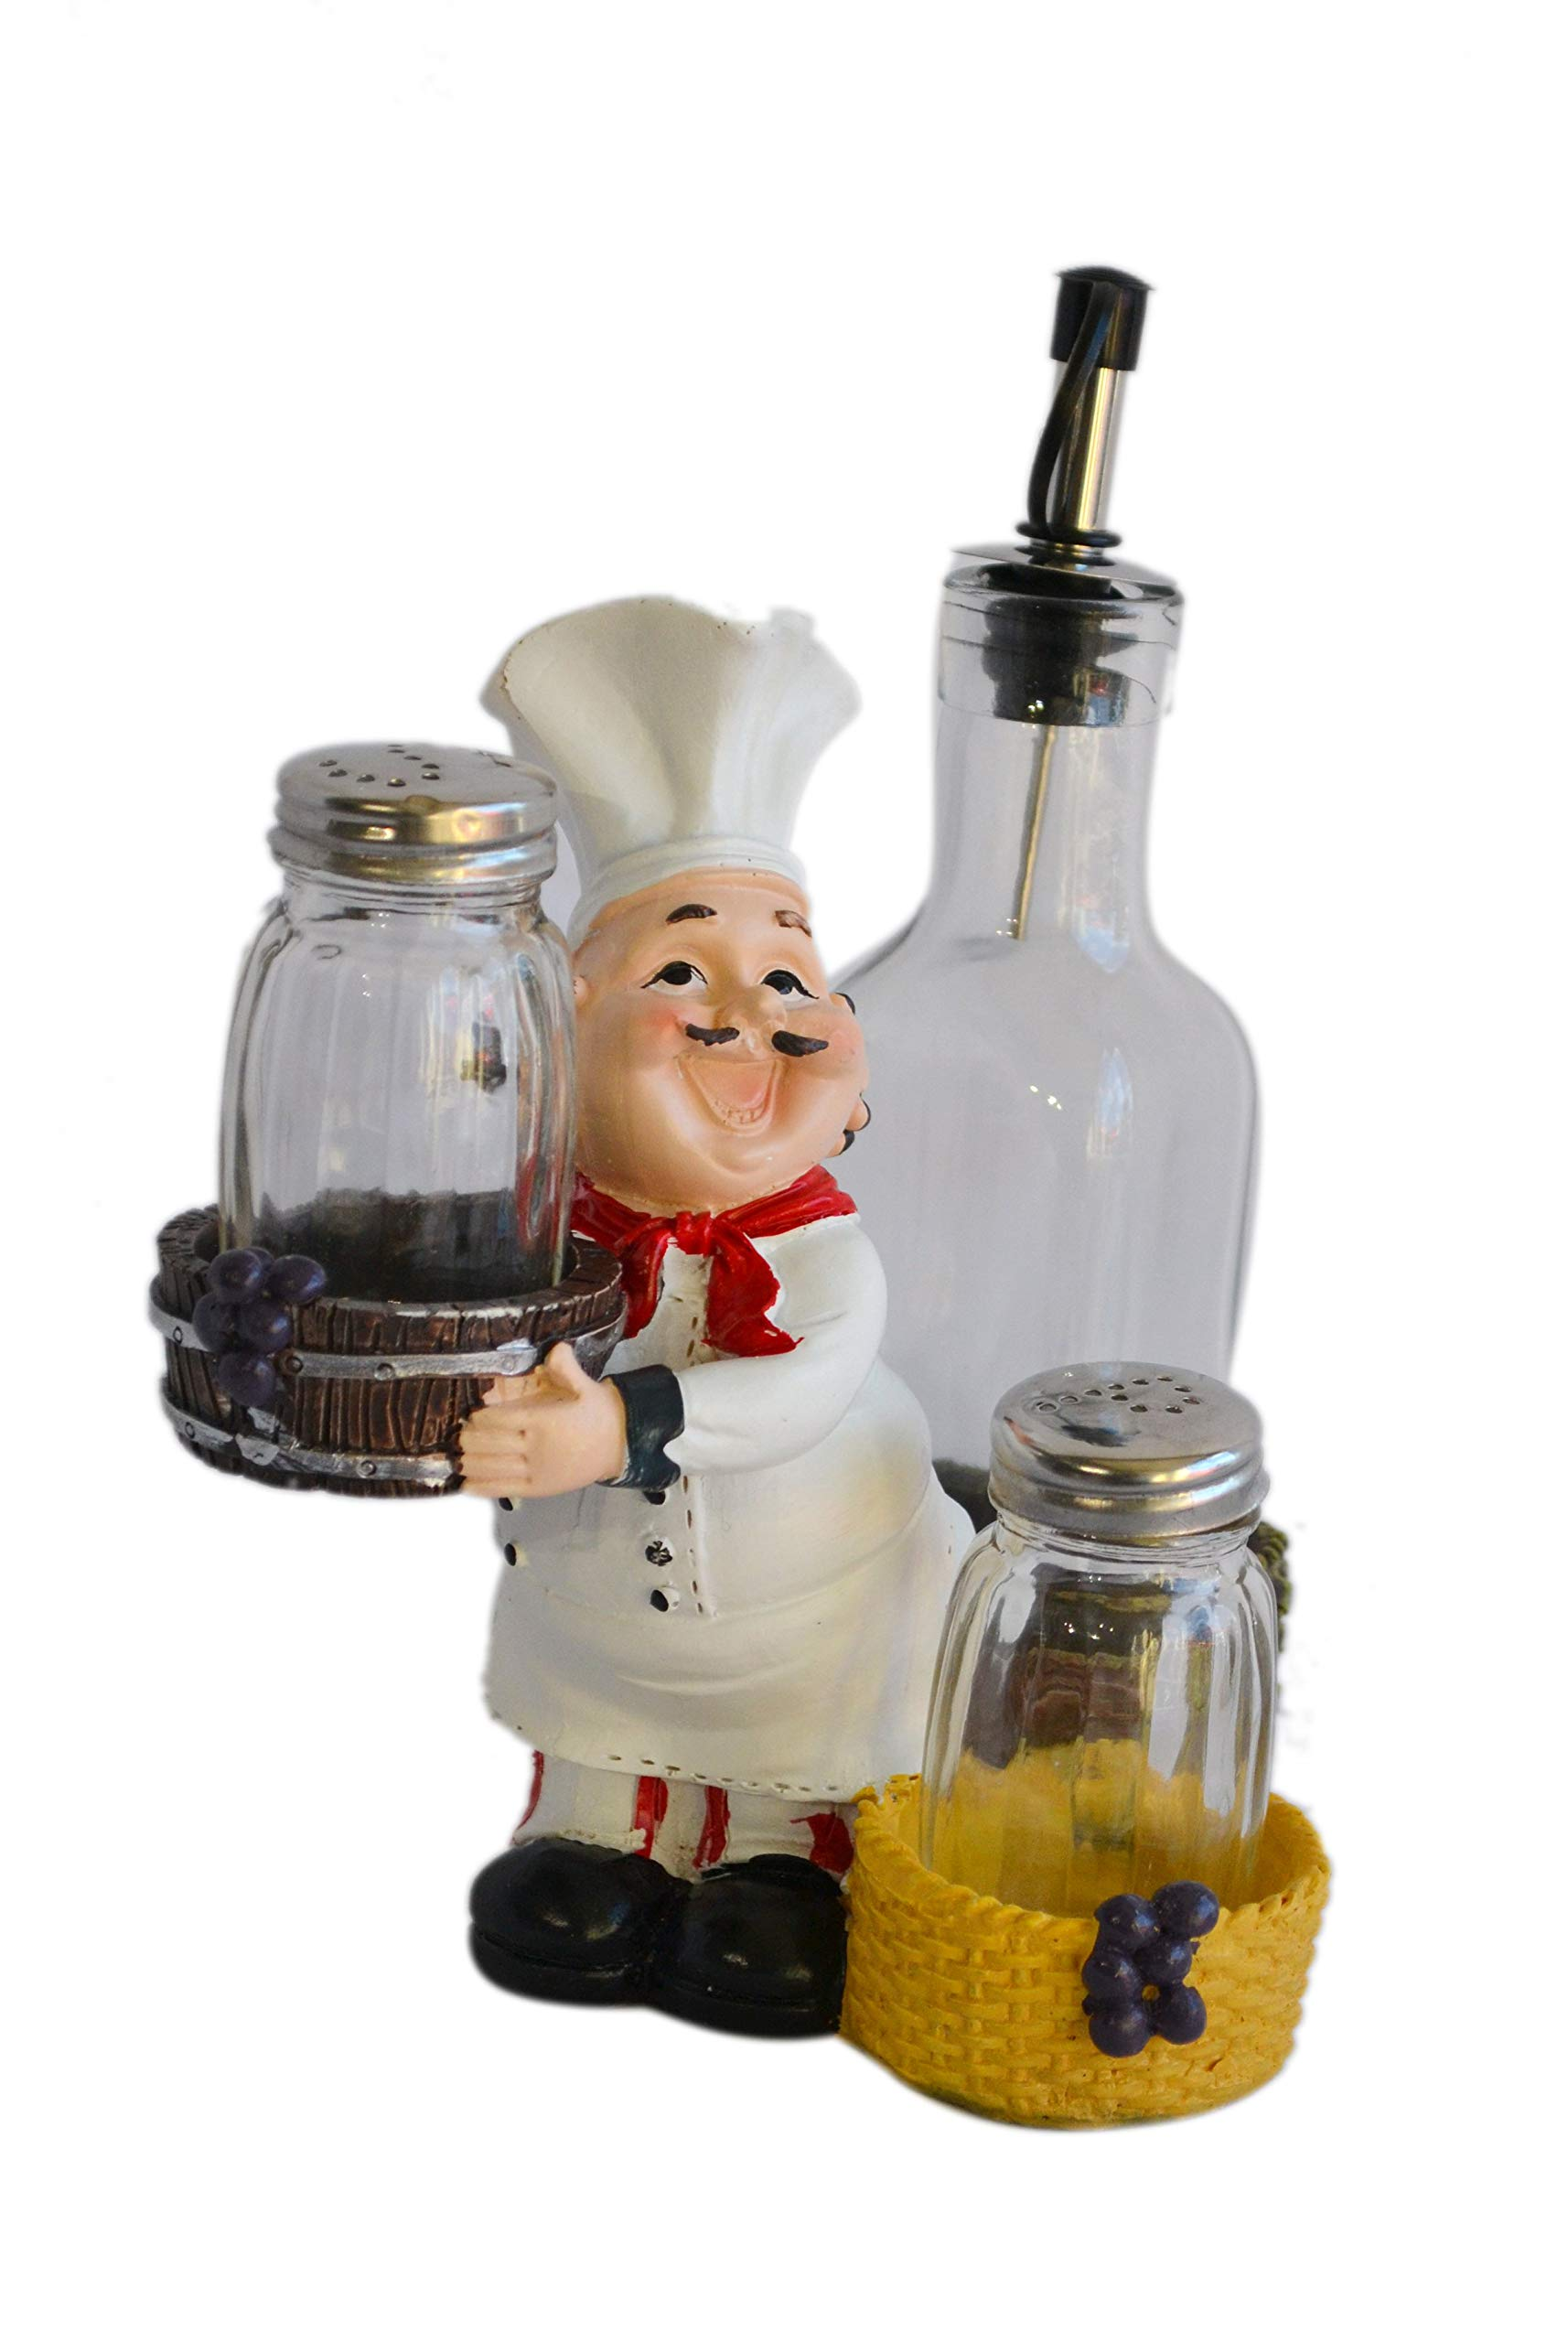 Chef With Resin & Glass Salt Pepper Shakers And Oil Holder Figurine by My Aashis (Image #1)